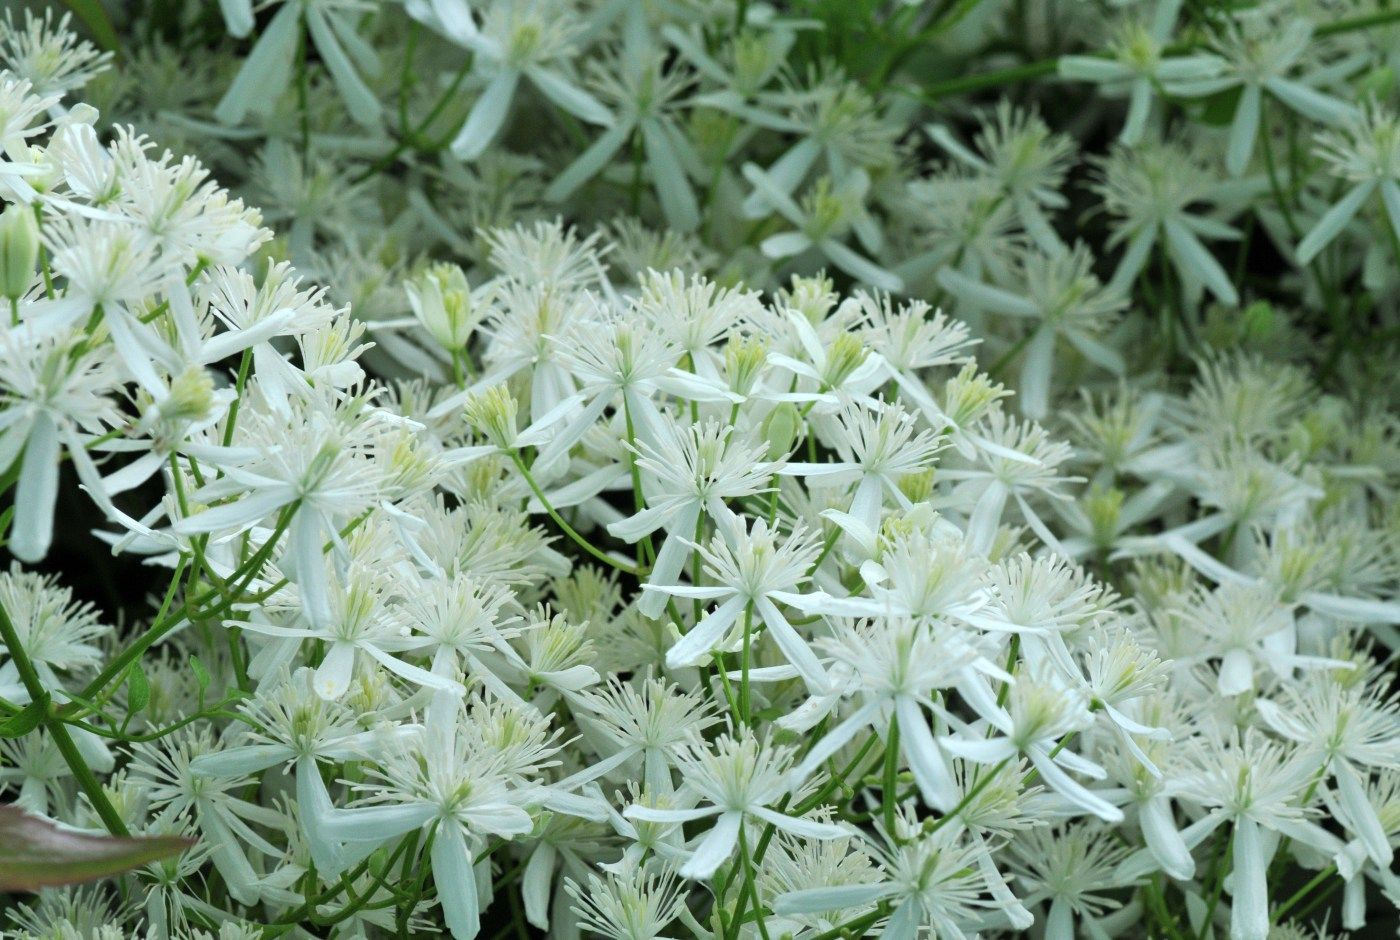 Sweet Autumn Clematis Lots Of Small White Fragrant Flowersmost